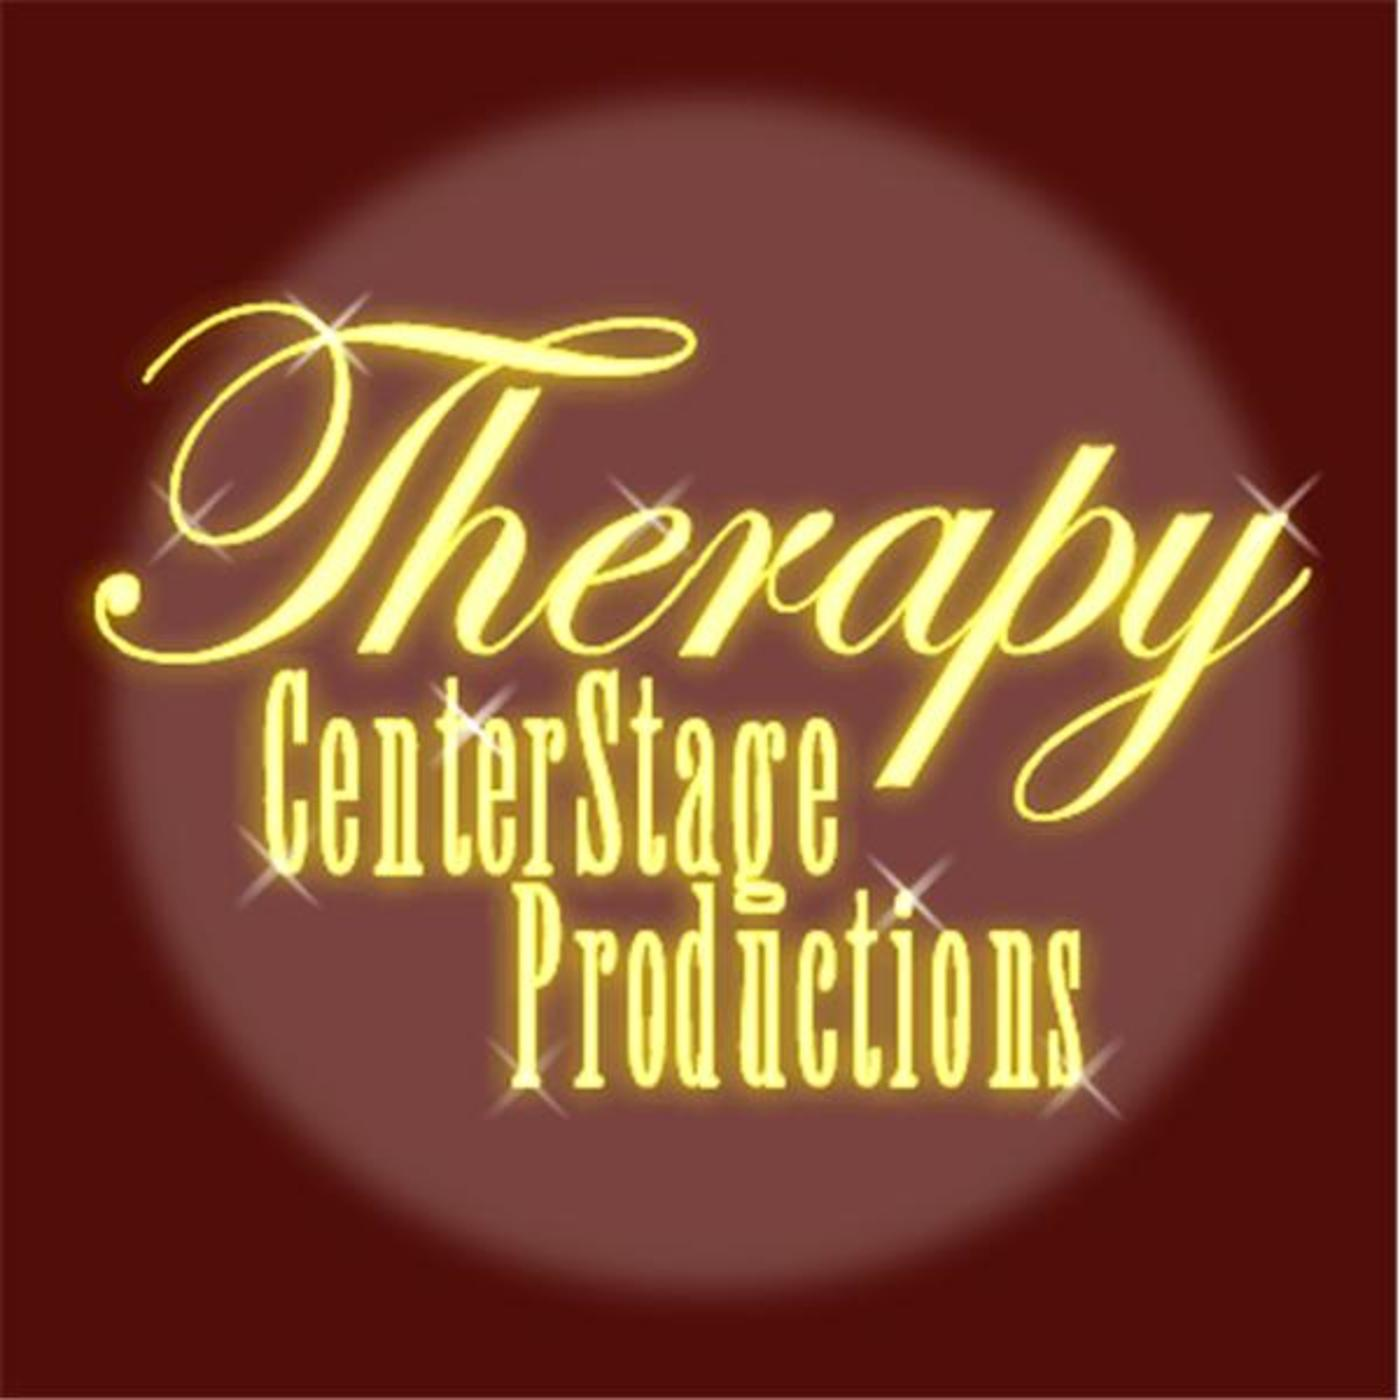 Therapy CenterStage Productions